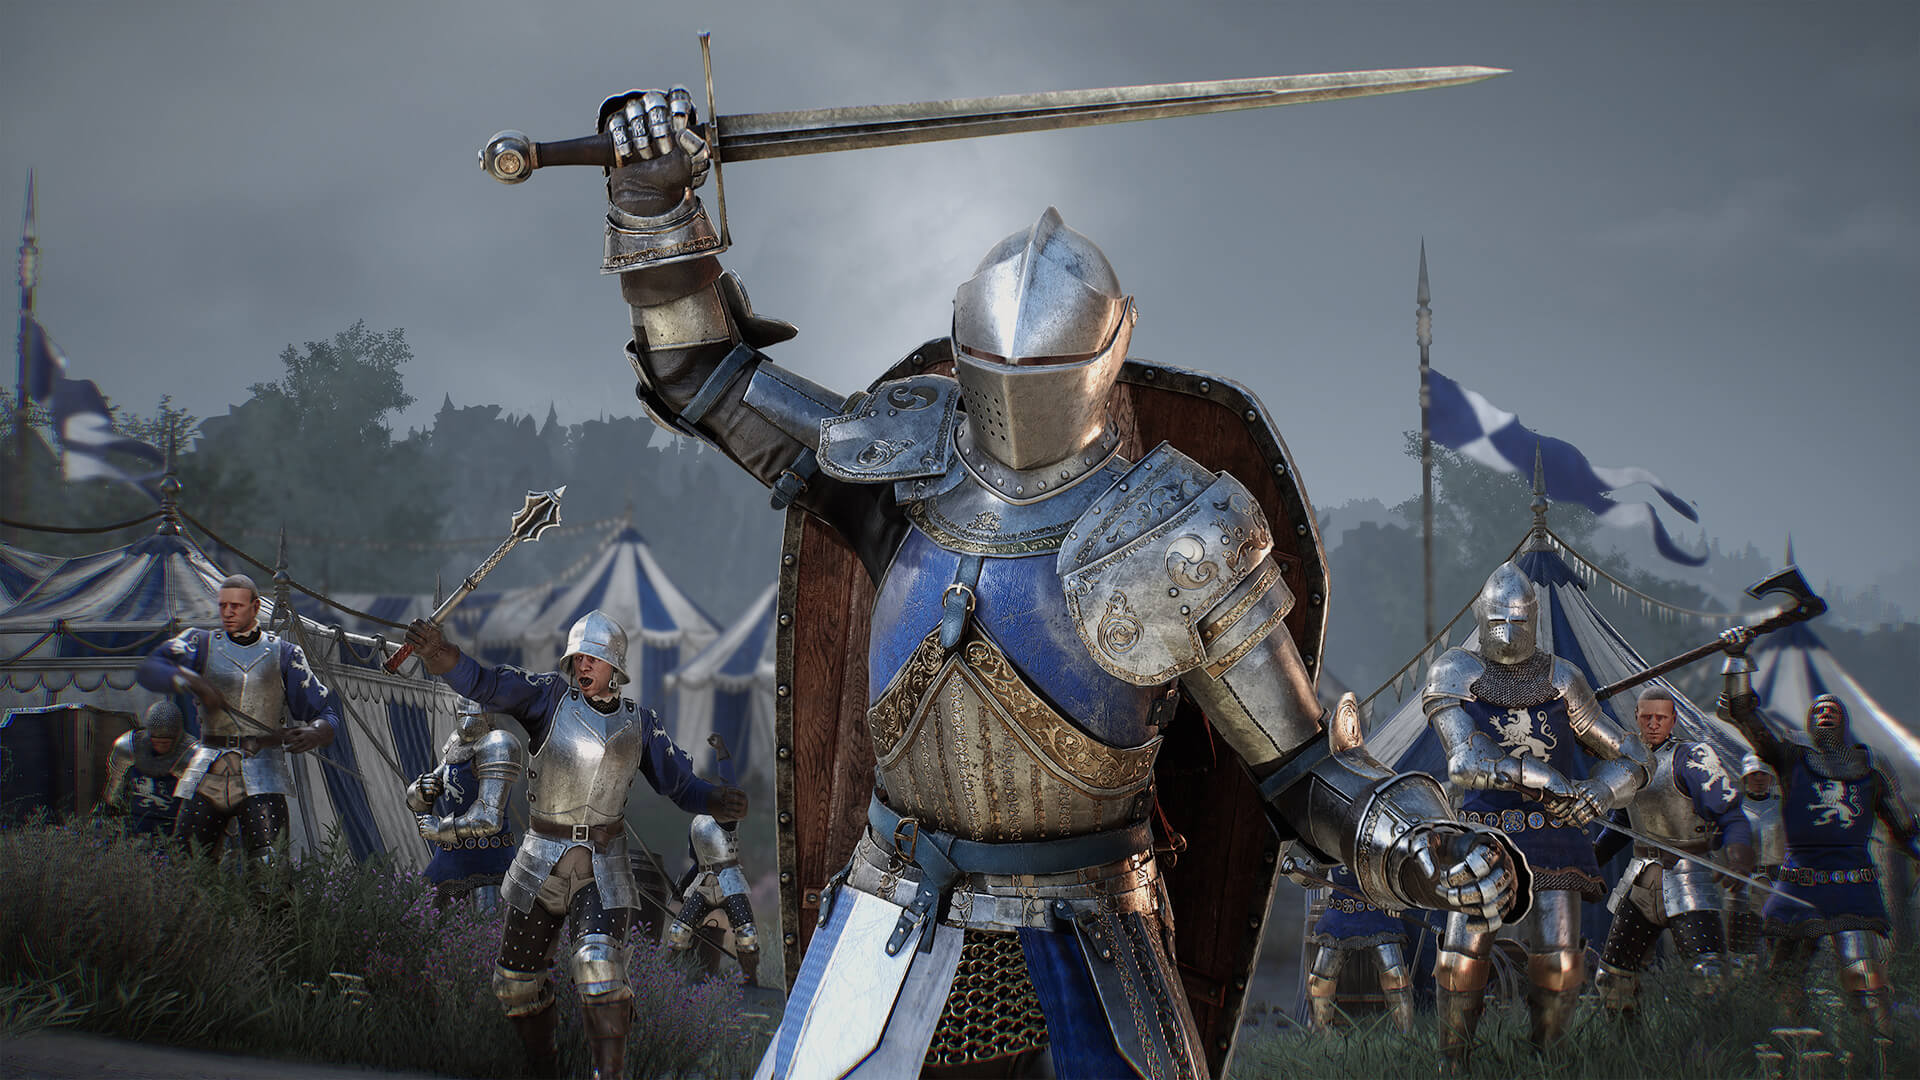 Chivalry 2 is designed to make you feel like you're in a medieval war - Unreal Engine